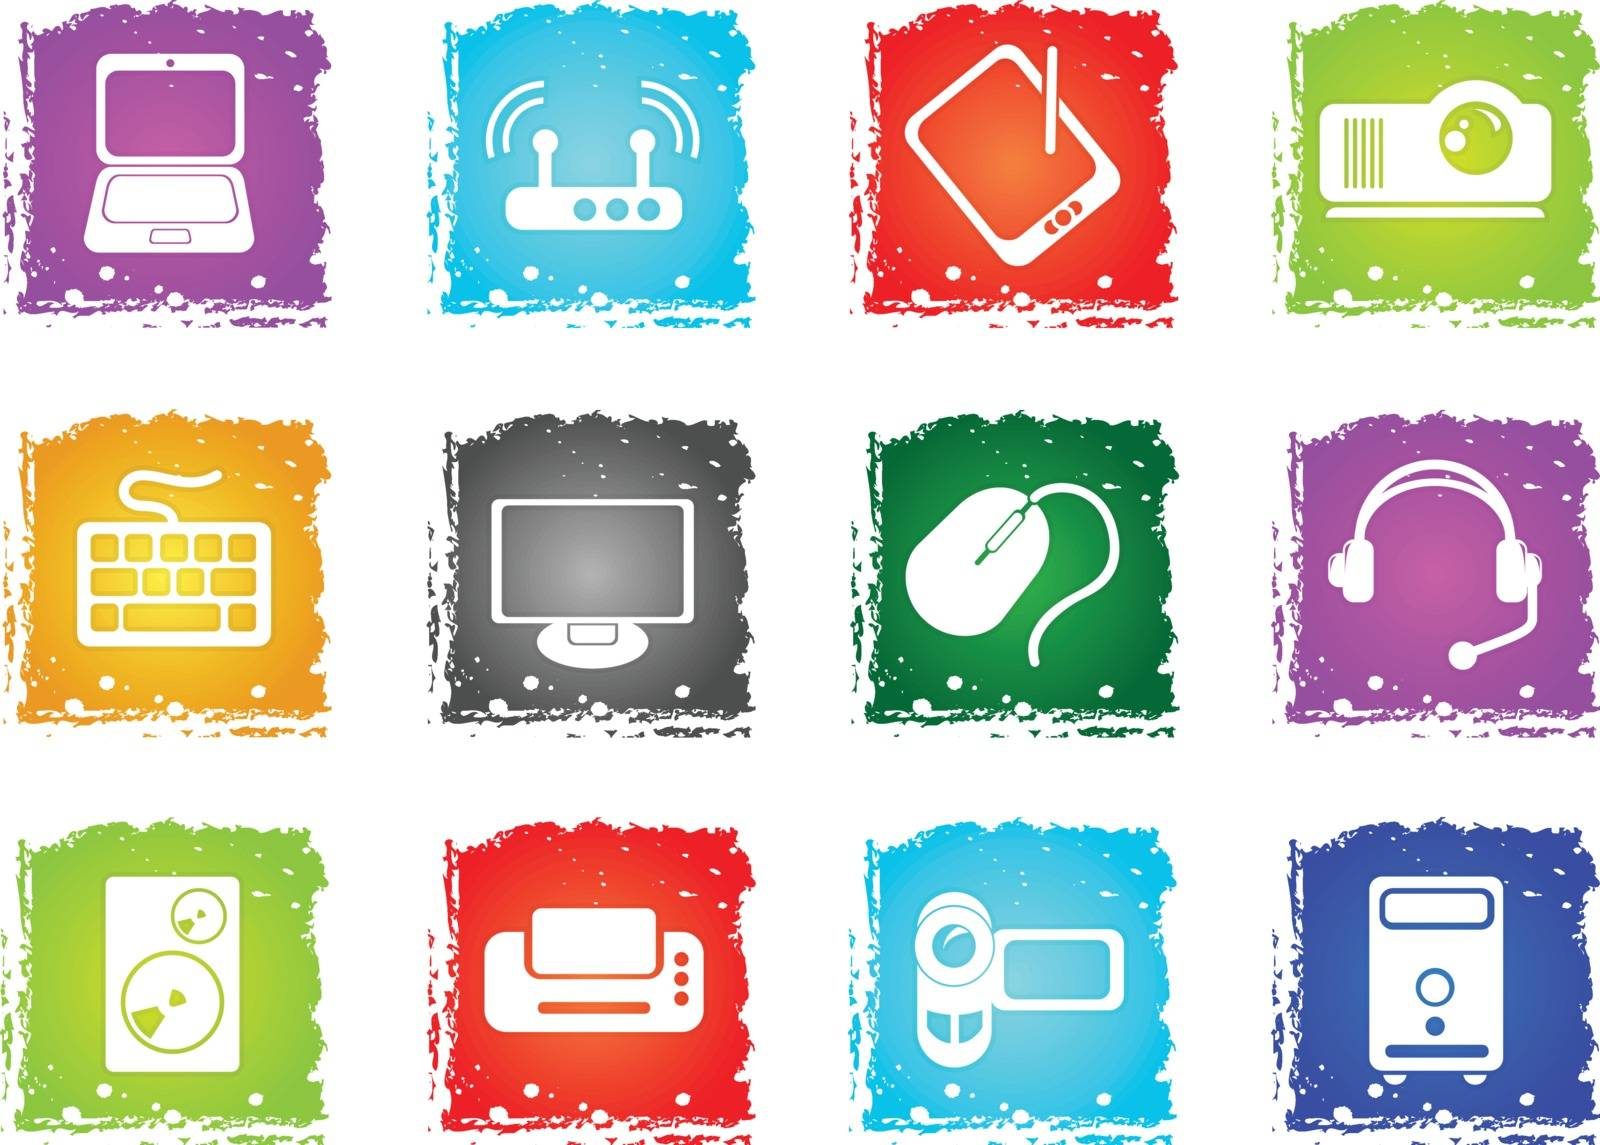 Computer equipment simple vector icons in grunge style for user interface design